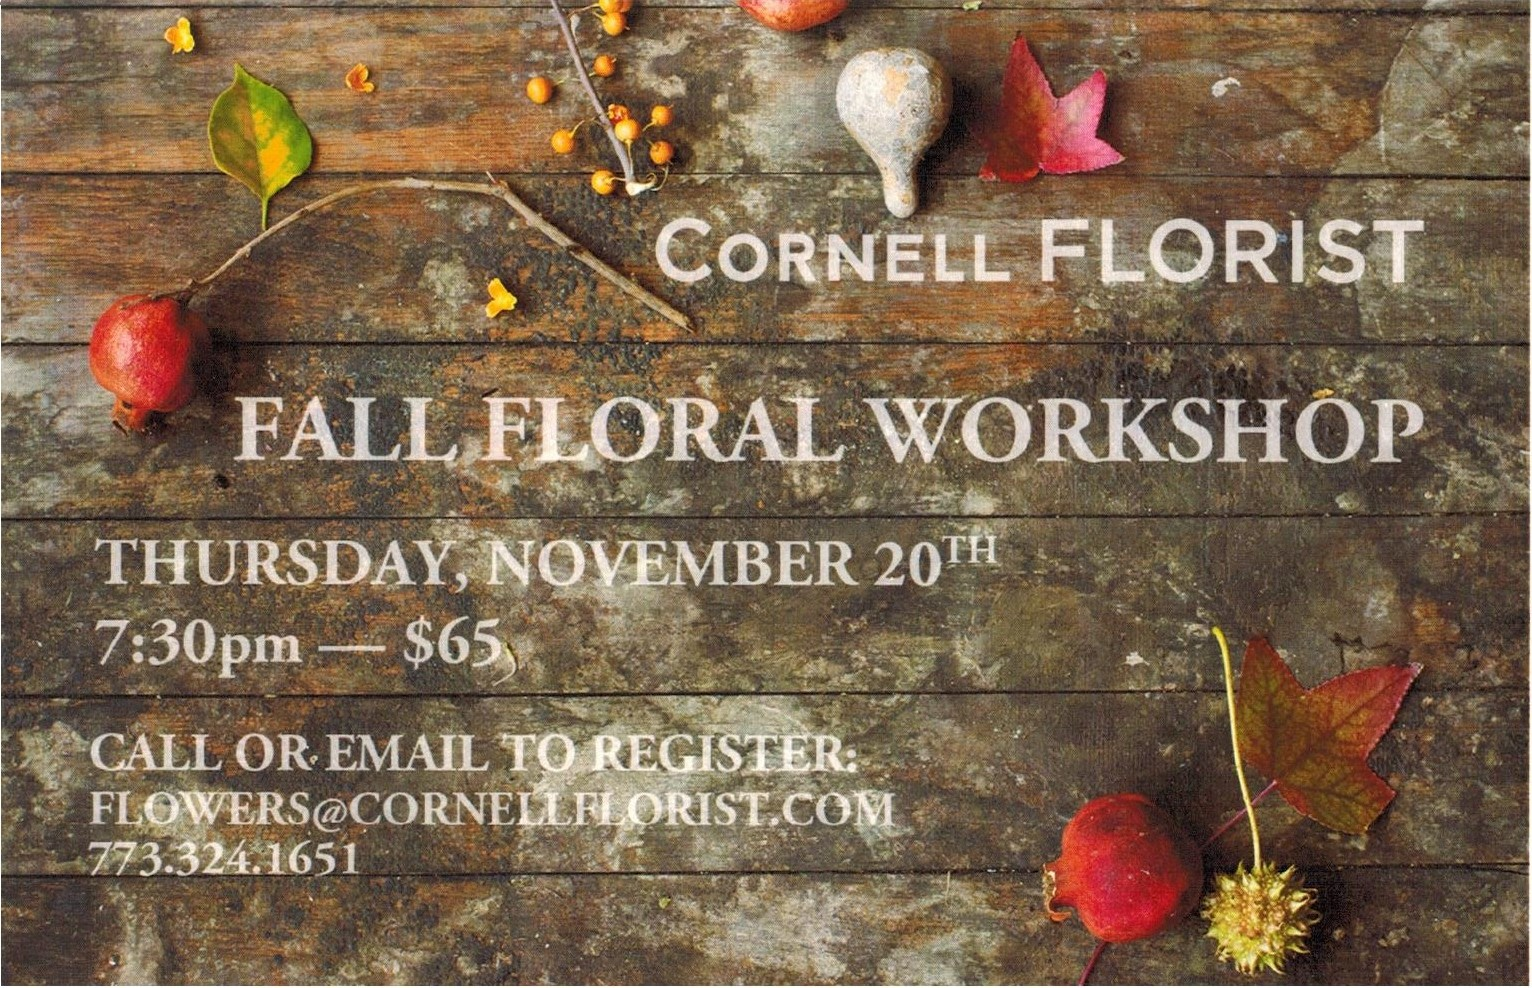 A few spots left for our autumn workshop -- we'll be using lots of foliage, berries, and seed pods to make a seasonal and fun arrangement for your holiday table. Call or e-mail to hold your spot!